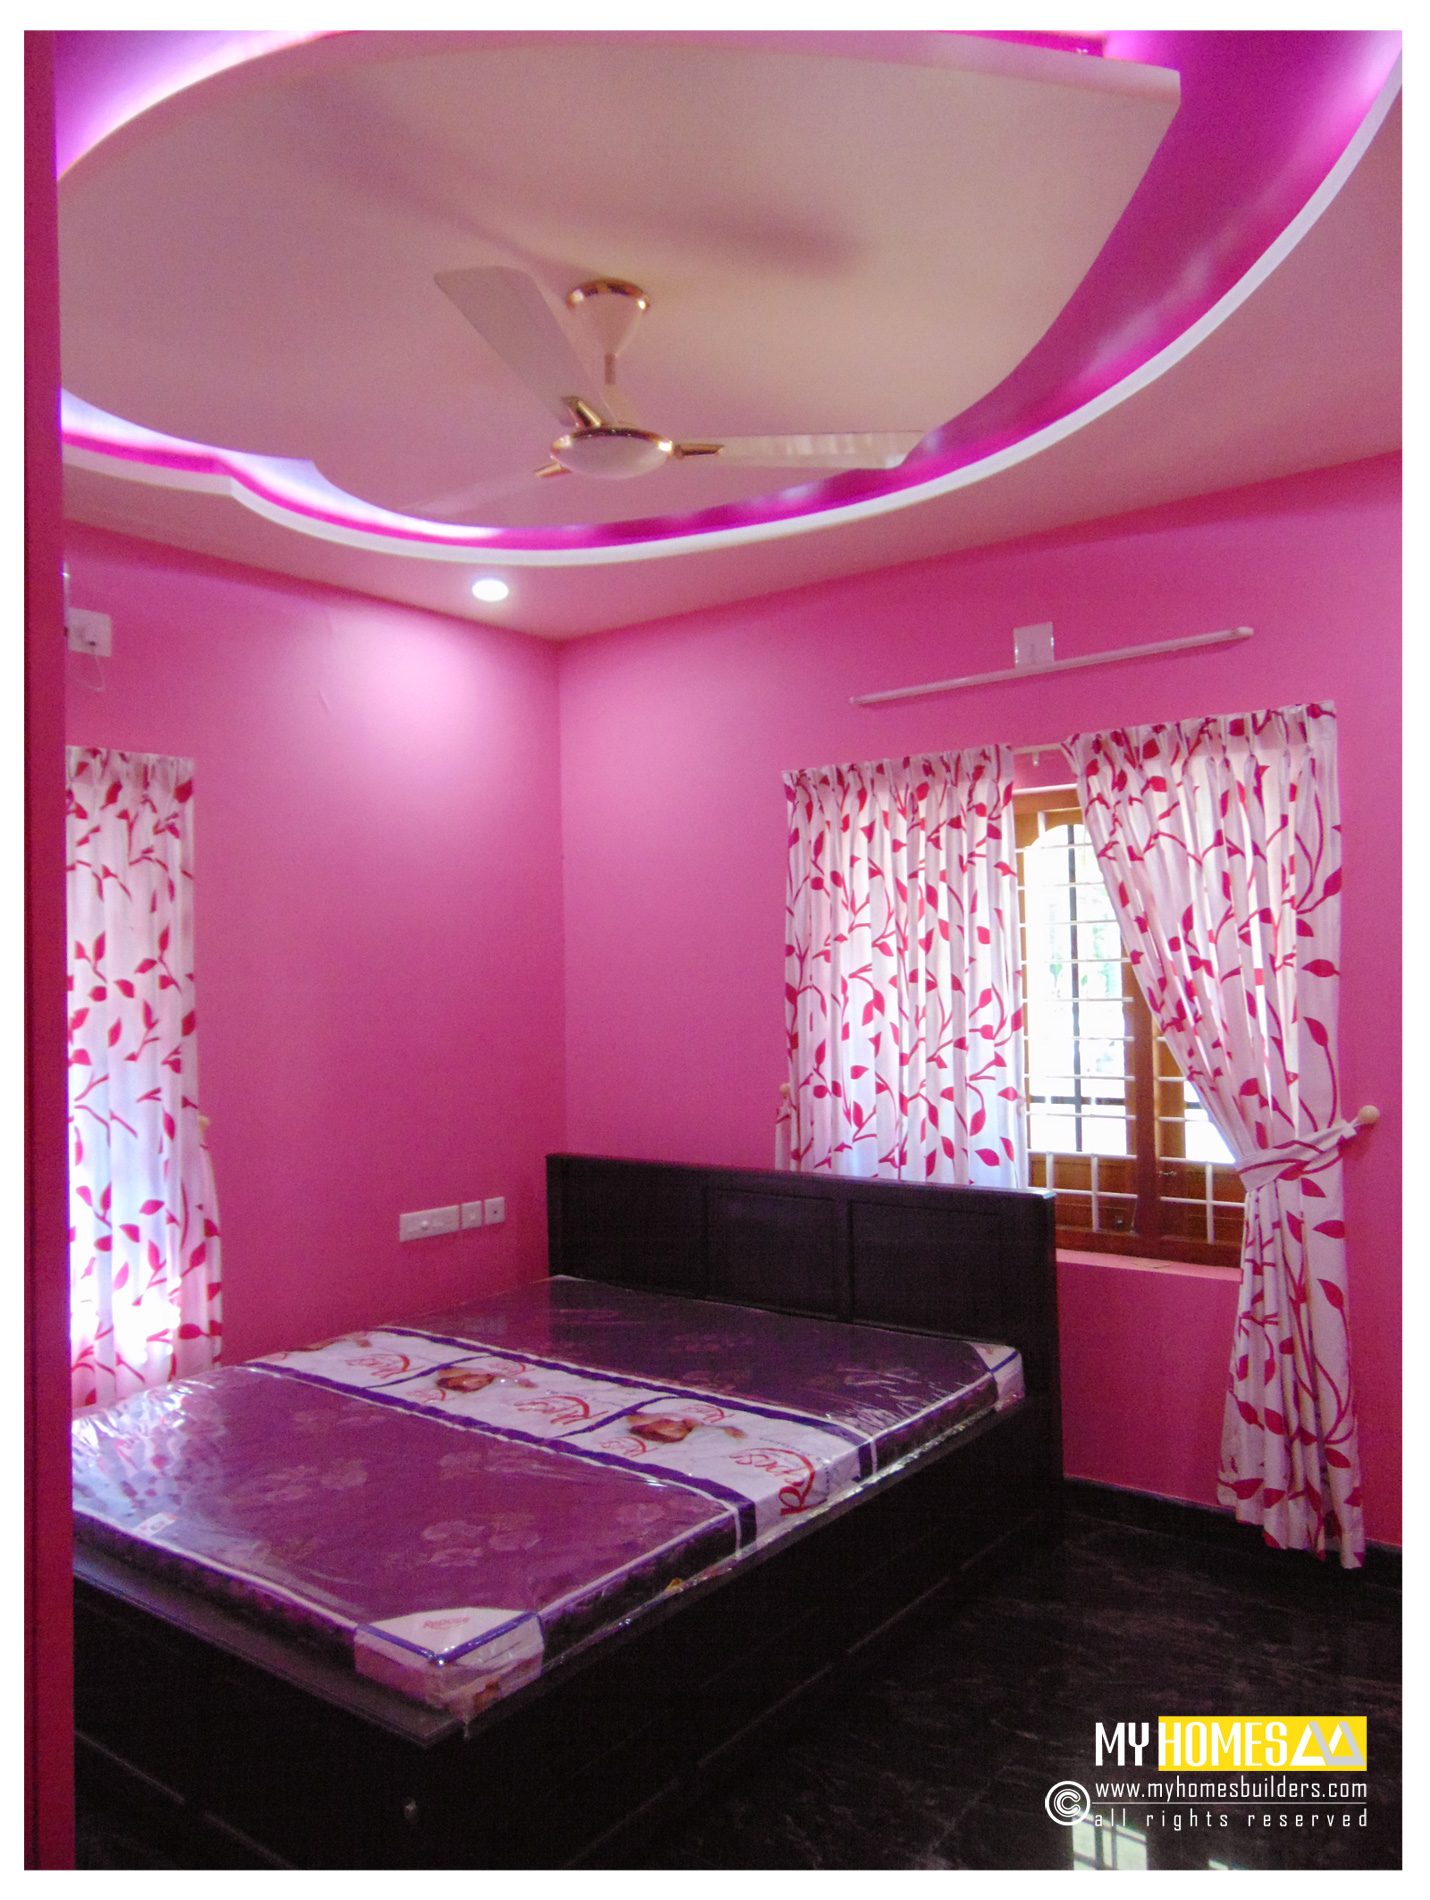 Simple style kerala bedroom designs ideas for home interior for Bedroom designs pictures